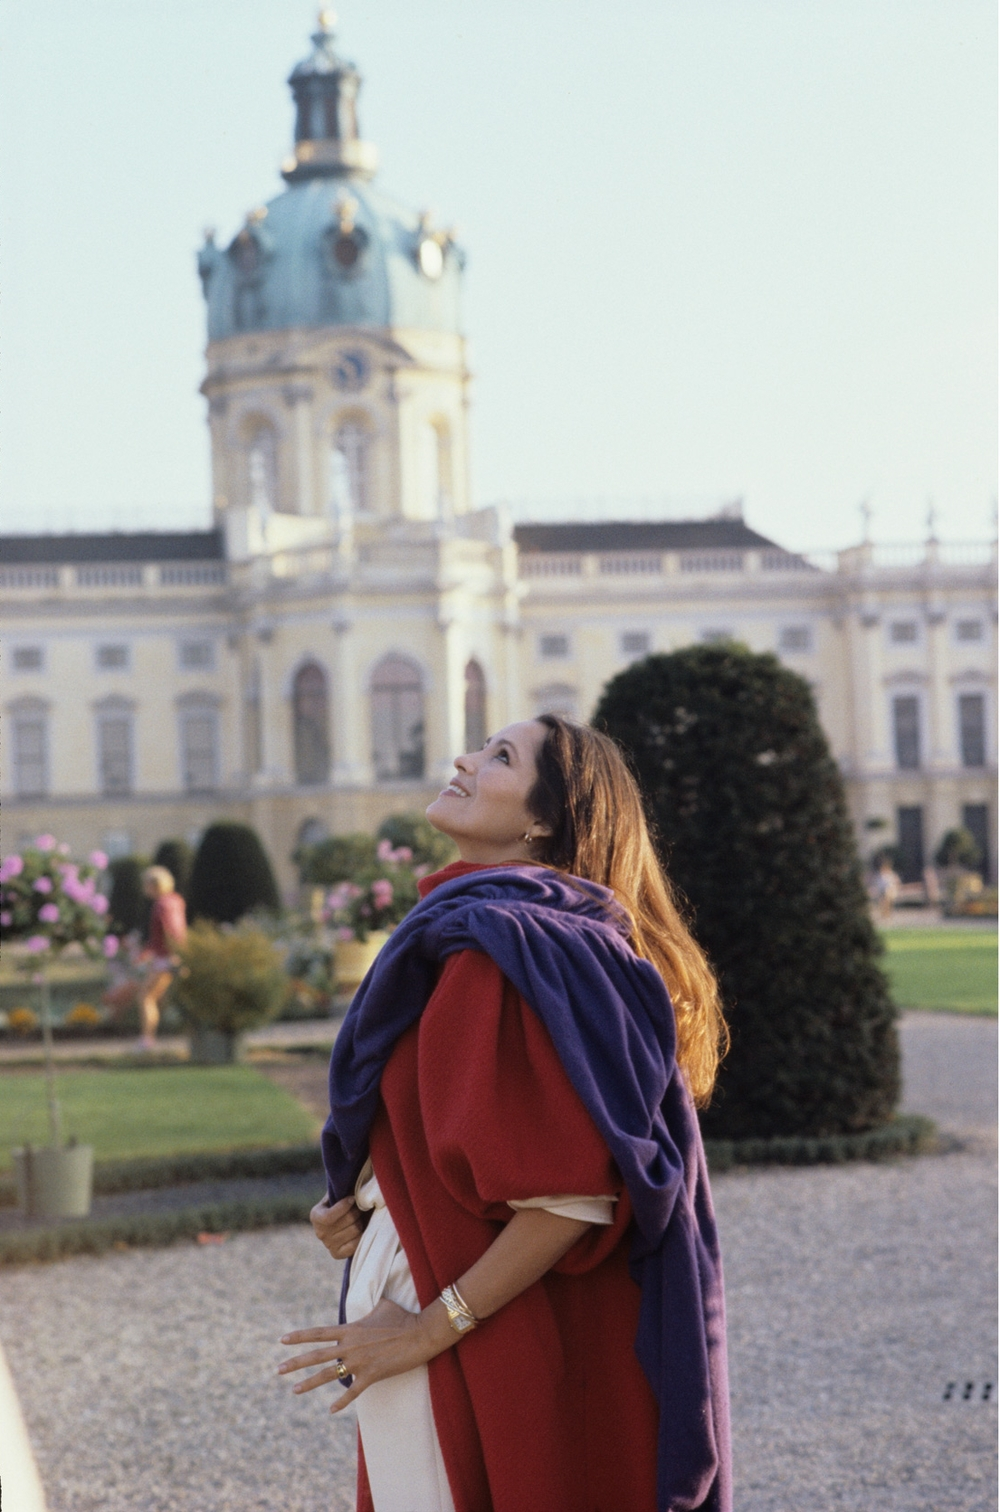 Barbara Carrera  - Charlottenburg Palace, Berlin